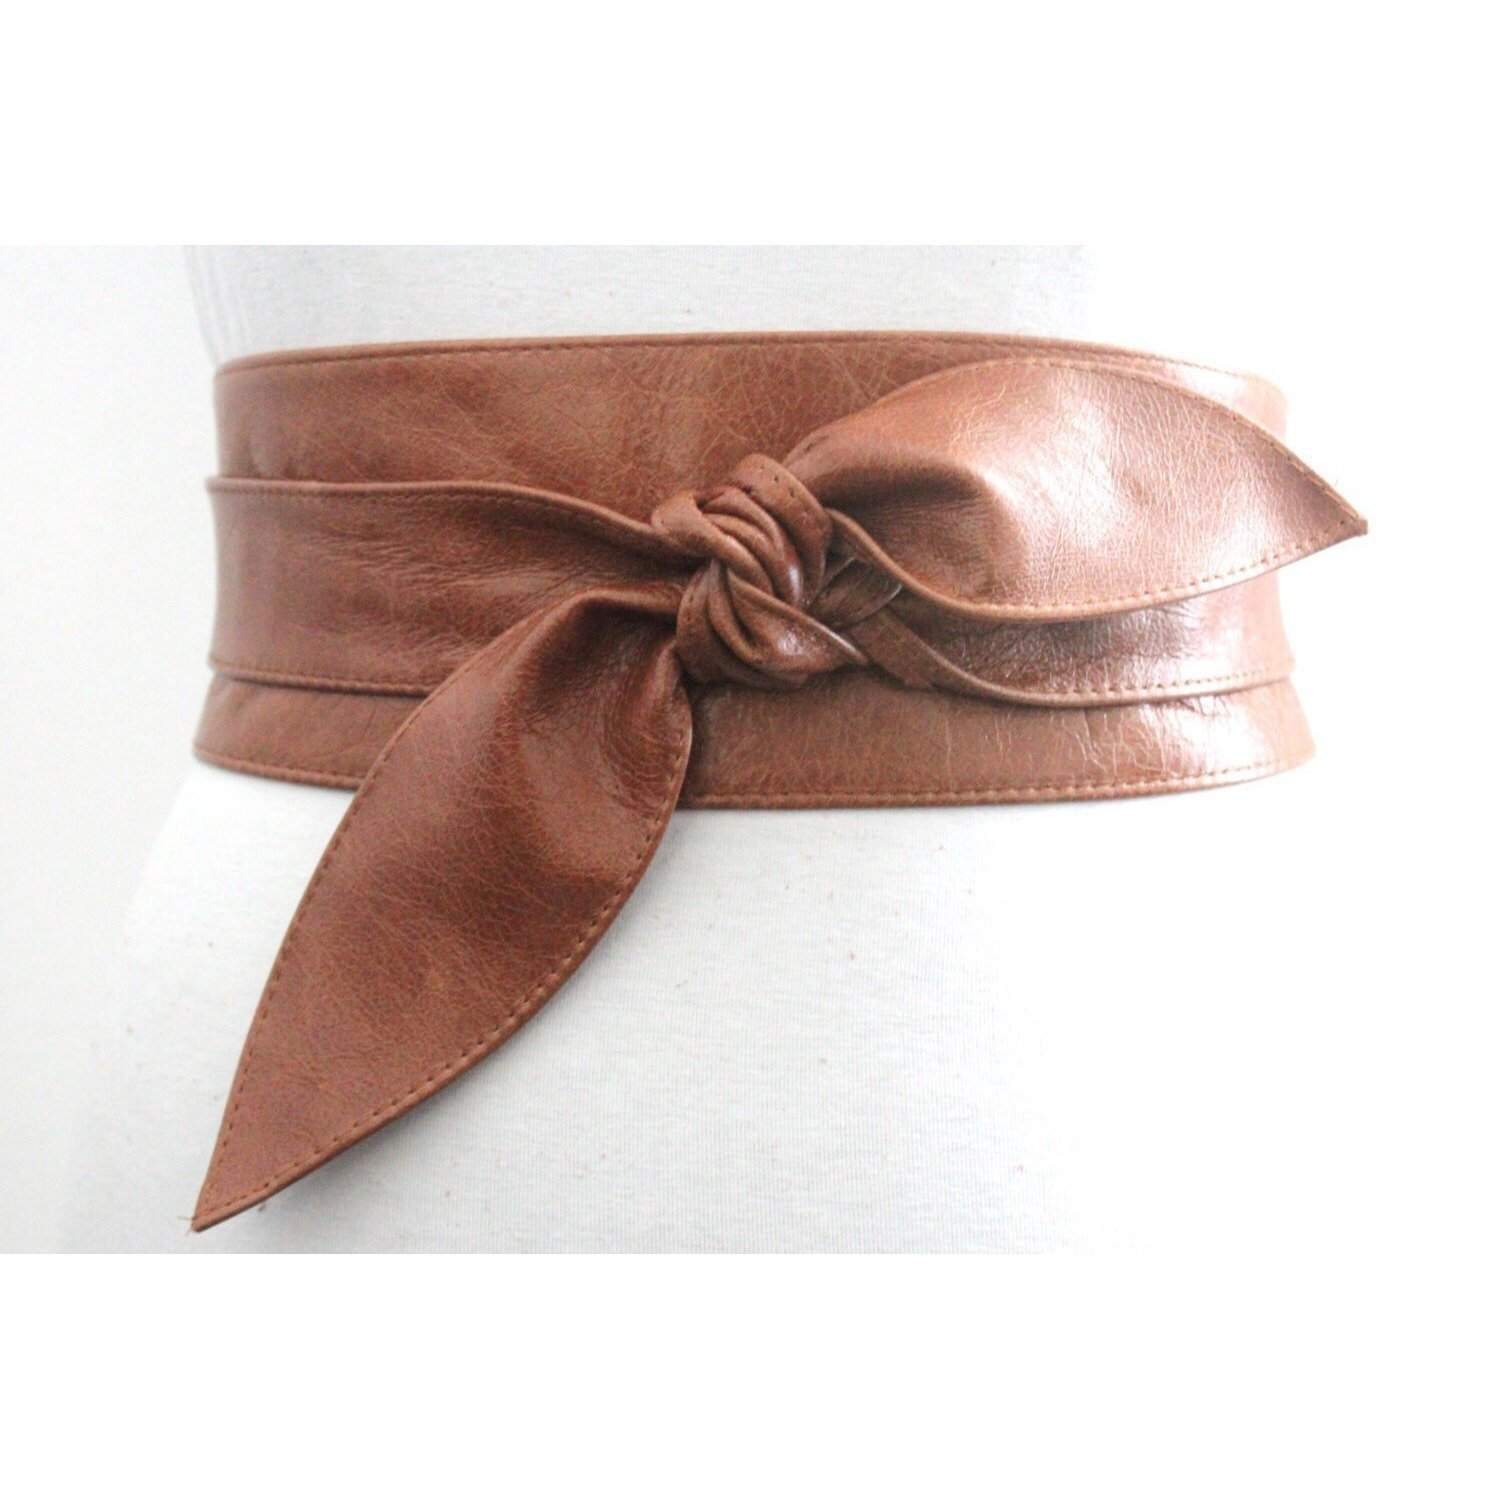 Distressed Tan Brown Leather Obi Belt, tulip tie Belt, Western Leather Belt, Corst Leather Belt, Bridesmaid belt, Plus Size Belt - loveyaayaa